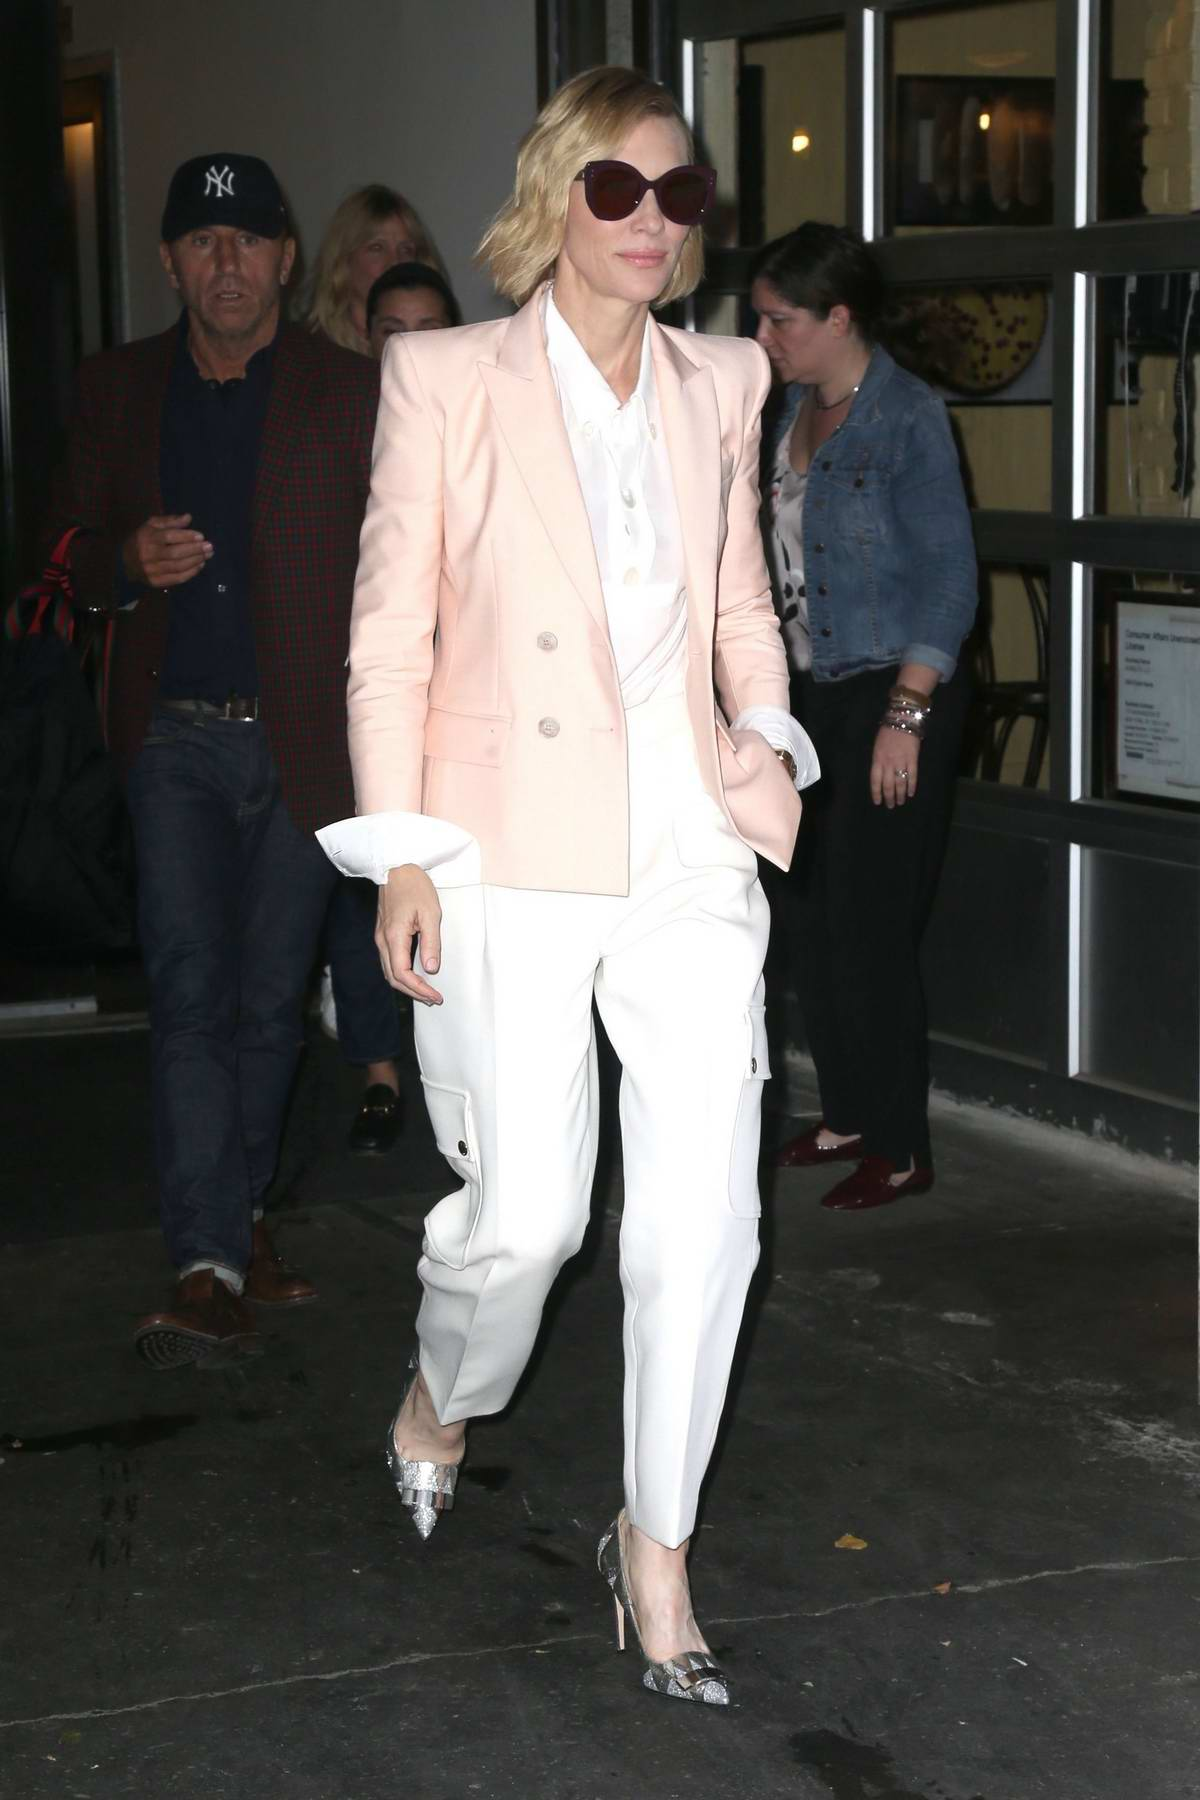 Cate Blanchett dressed in pastel pink and white suit leaving her hotel in New York City